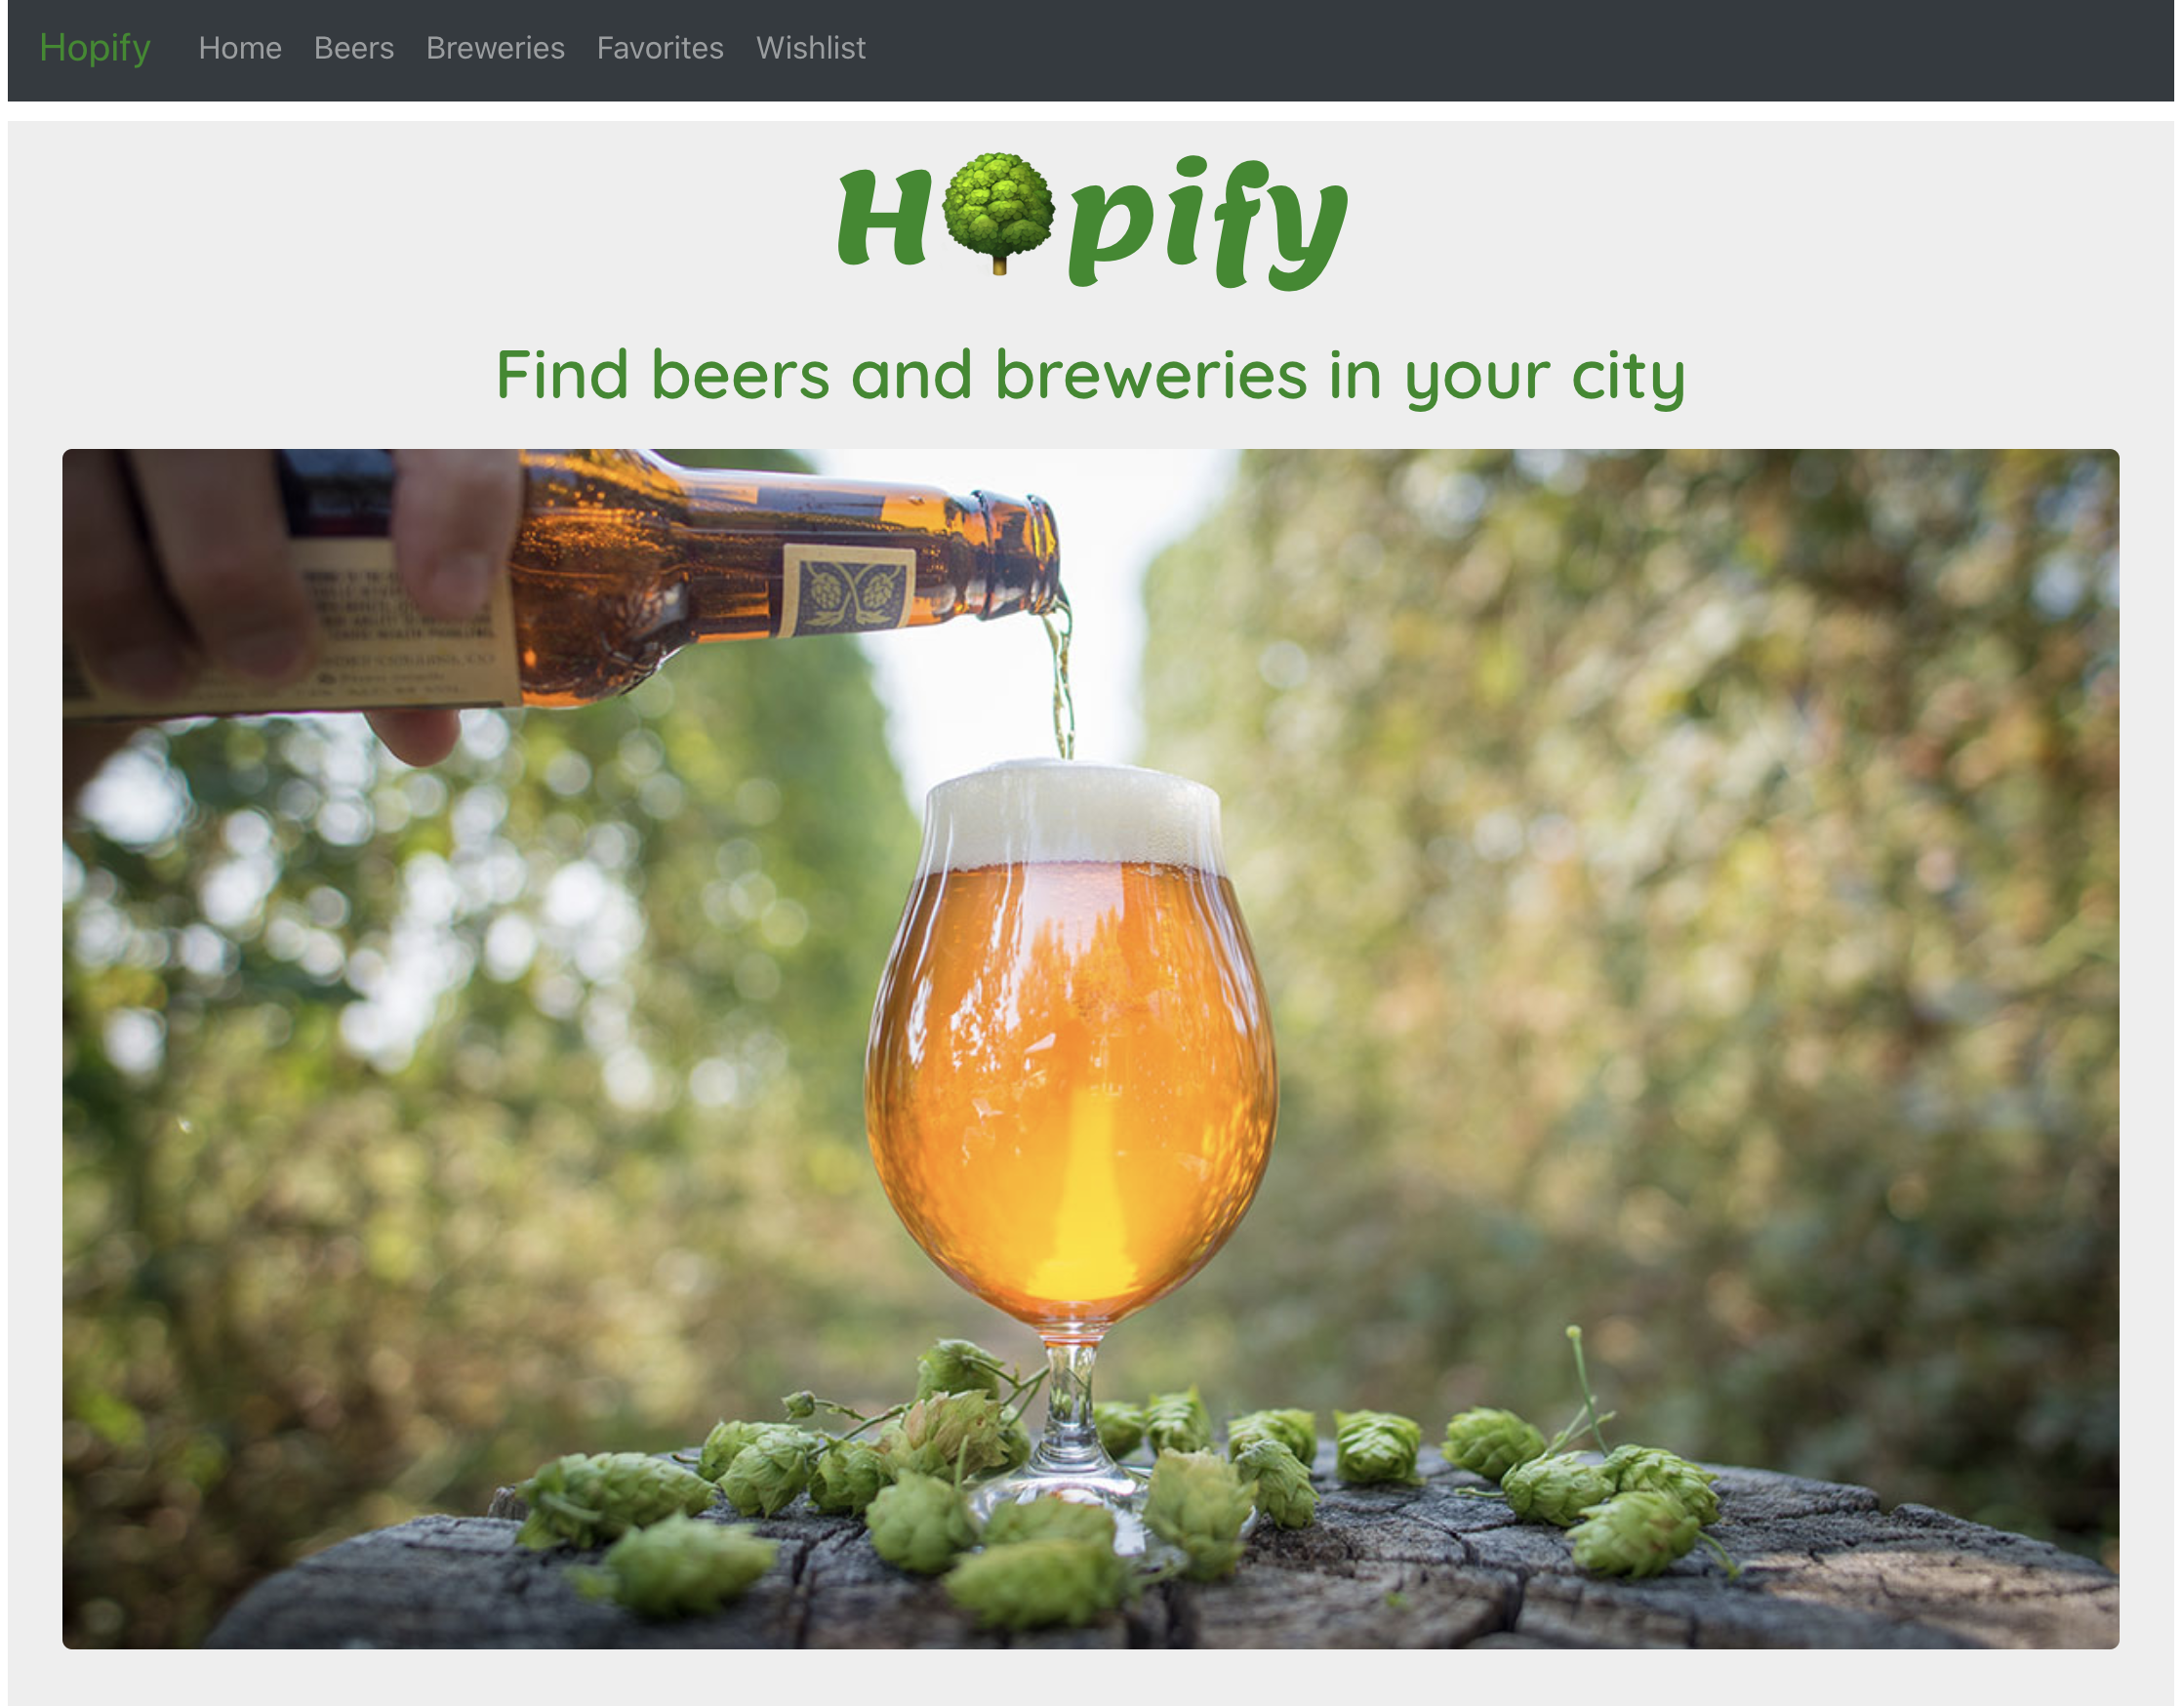 Thumbnail image for Hopify.